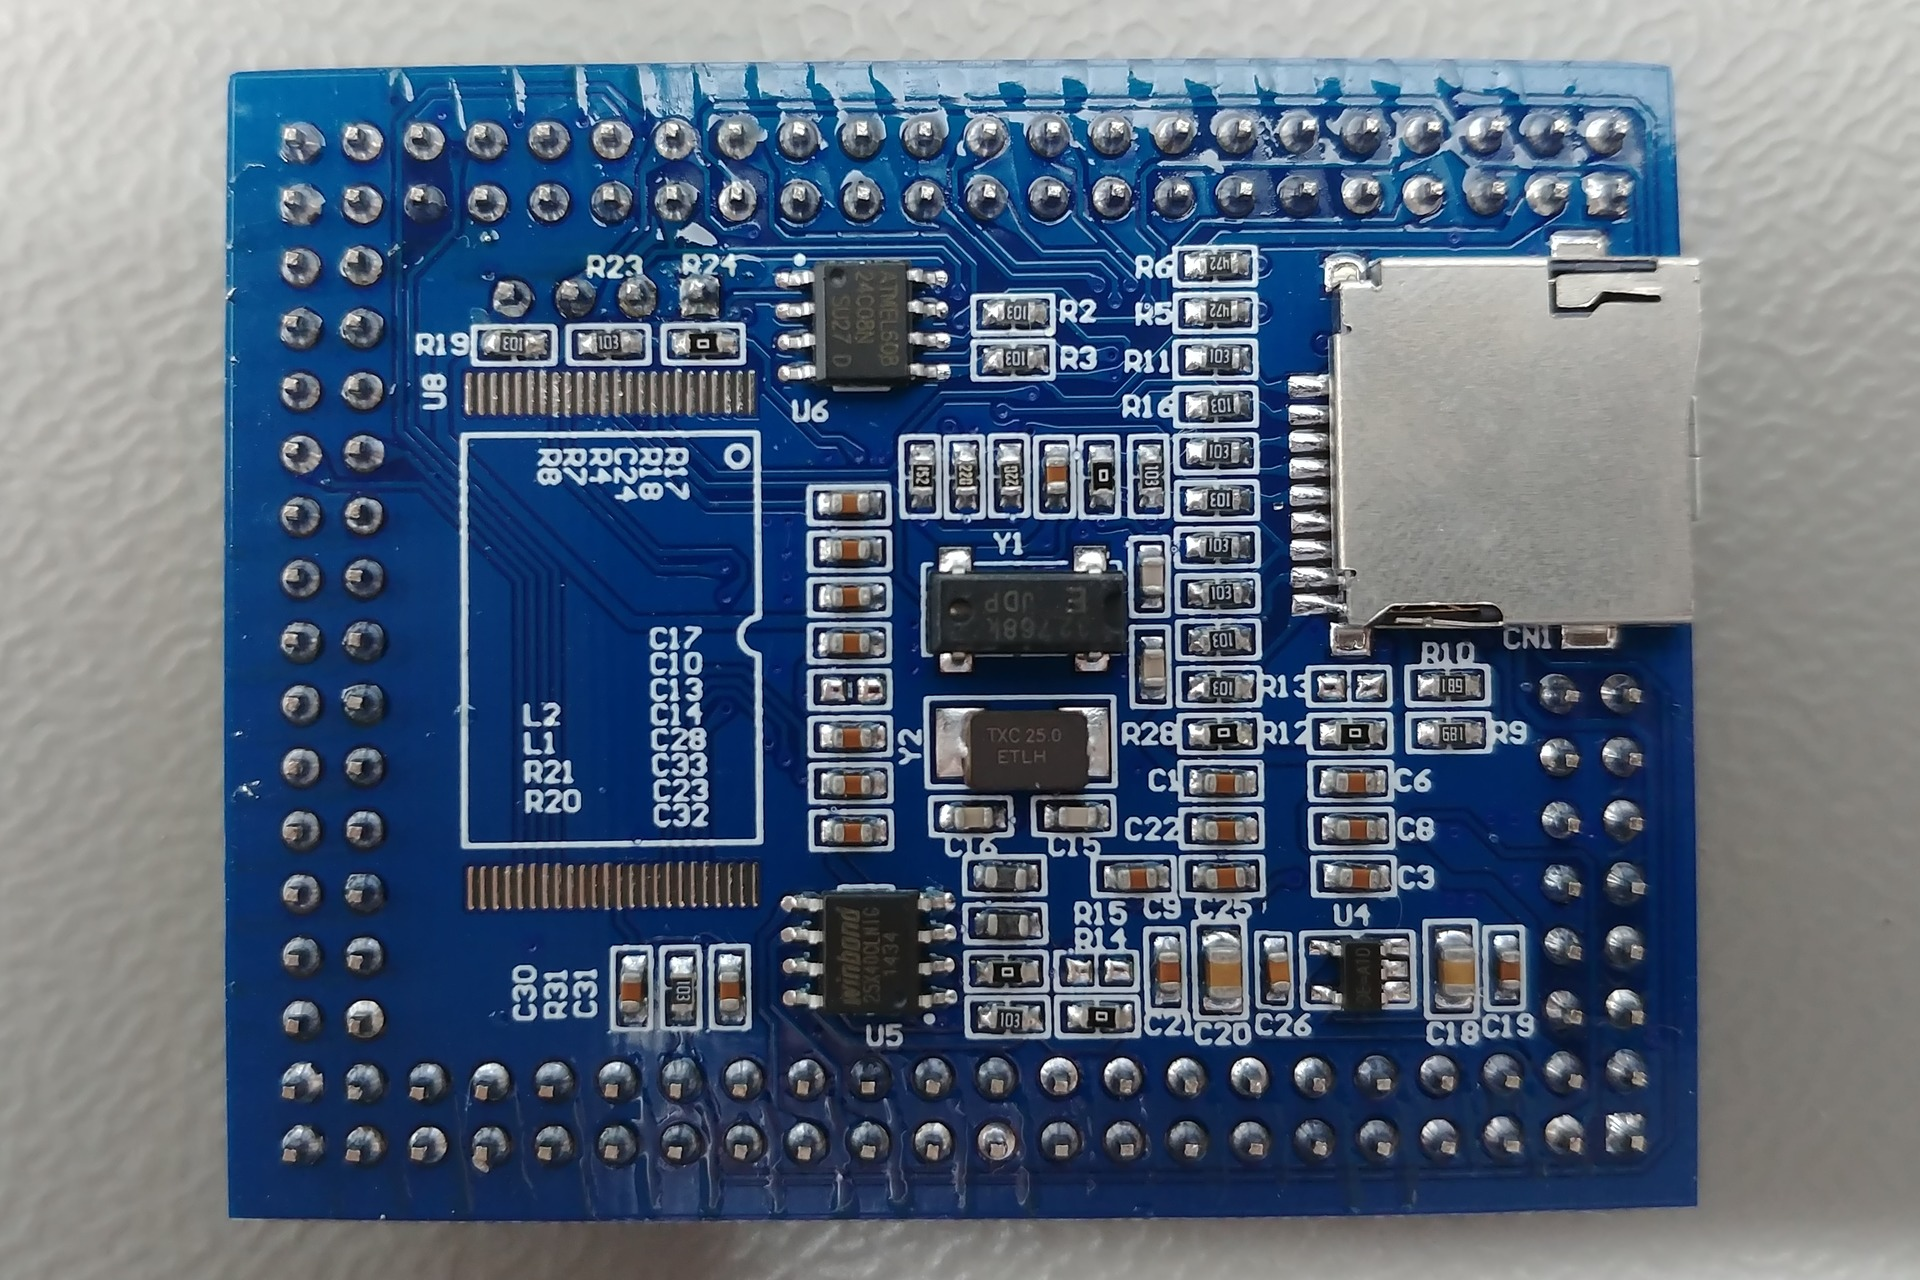 vcc-gnd.com STM32F407ZGT6 mini: Bottom view